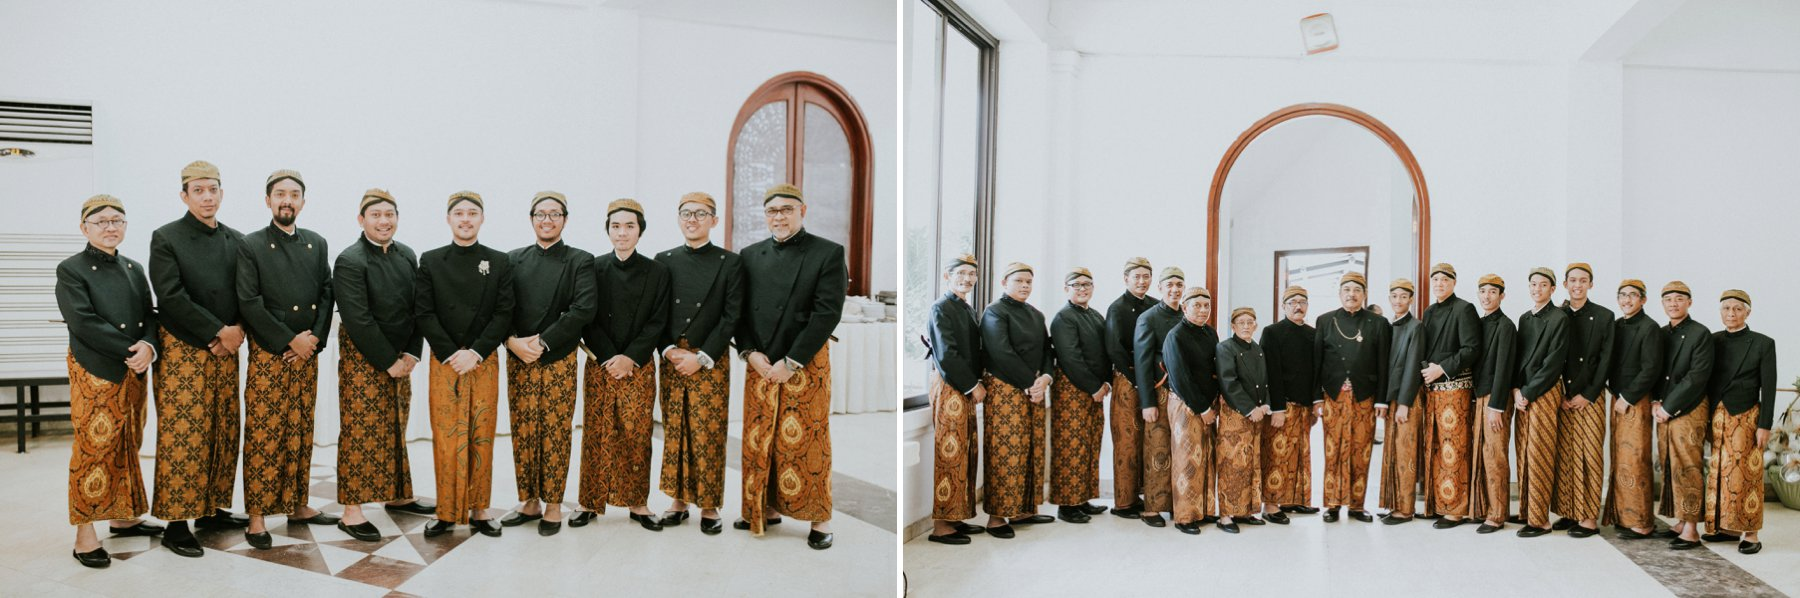 Sampoerna_Strategic_Wedding_Antijitters_Photo_0032